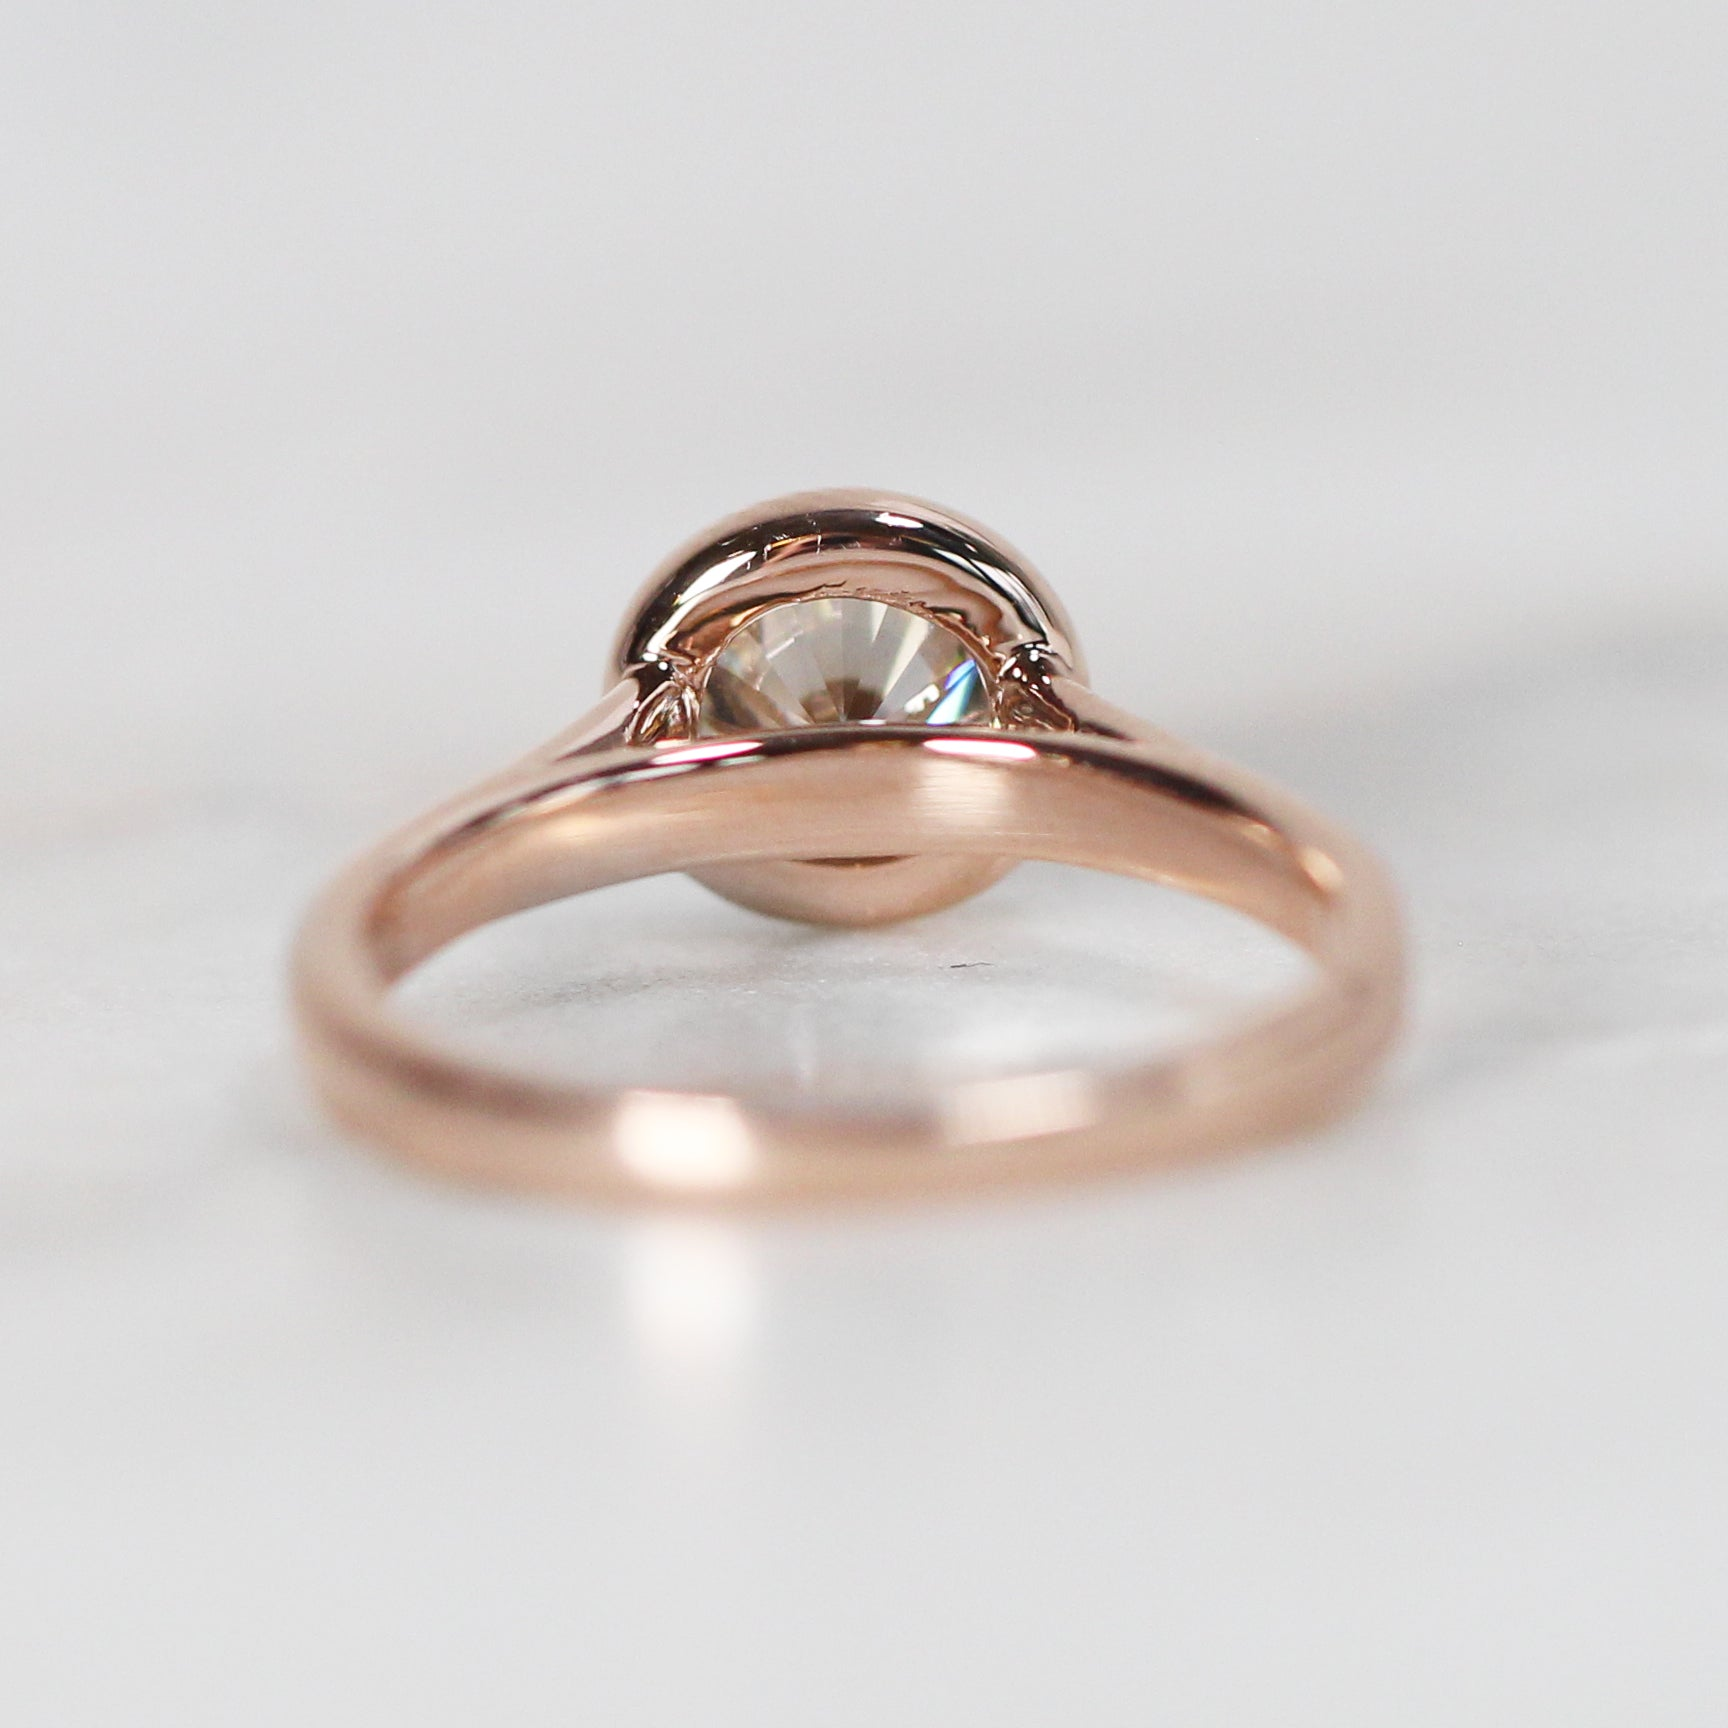 Octavia Ring with .74ct White Moissanite in 10k Rose Gold - Ready to Size and Ship - Celestial Diamonds ® by Midwinter Co.